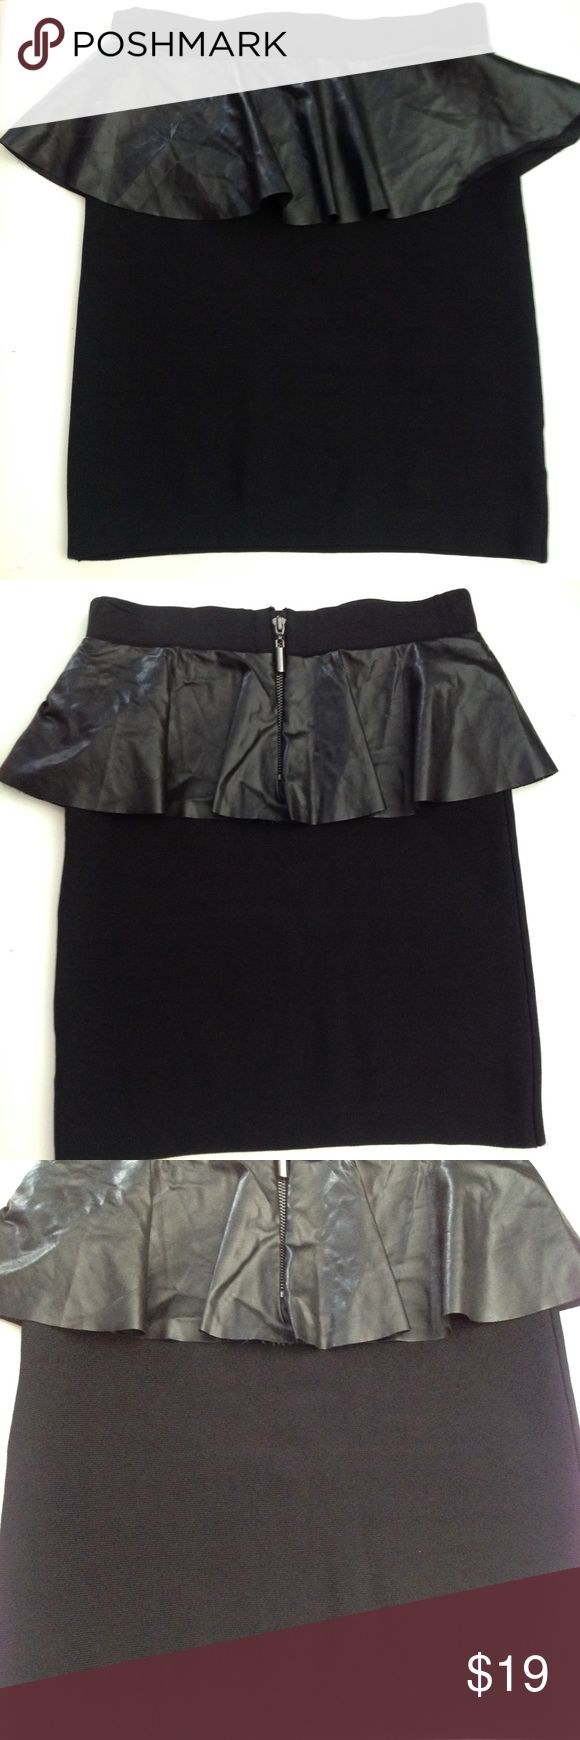 "Bebe Bandage and Faux Leather Peplum Skirt Bandage fitted skirt Faux leather Peplum Back exposed zipper Length approximately 18"" Waist approximately 26"" EUC  Bebe internal tag has detached on one side bebe Skirts"